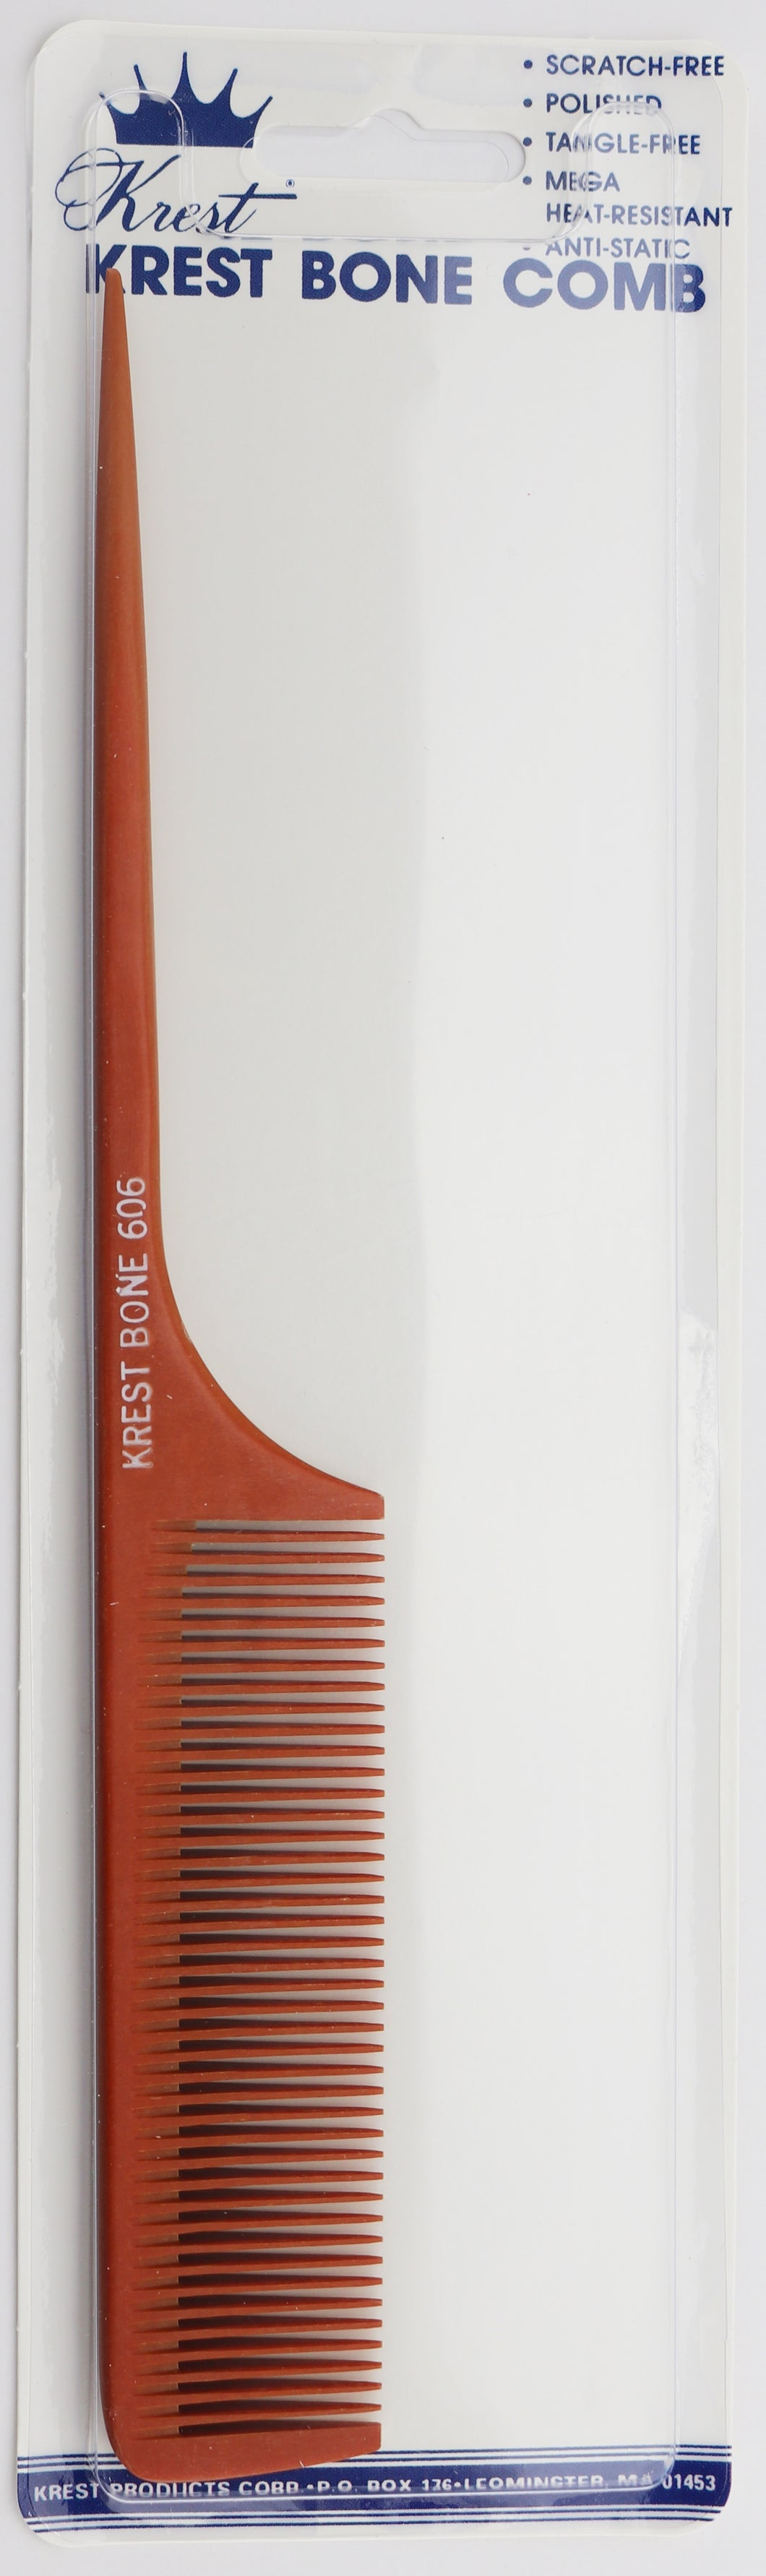 barber comb hair cutting comb hair comb  barber clippers  krest combs  rat tail comb  bone comb